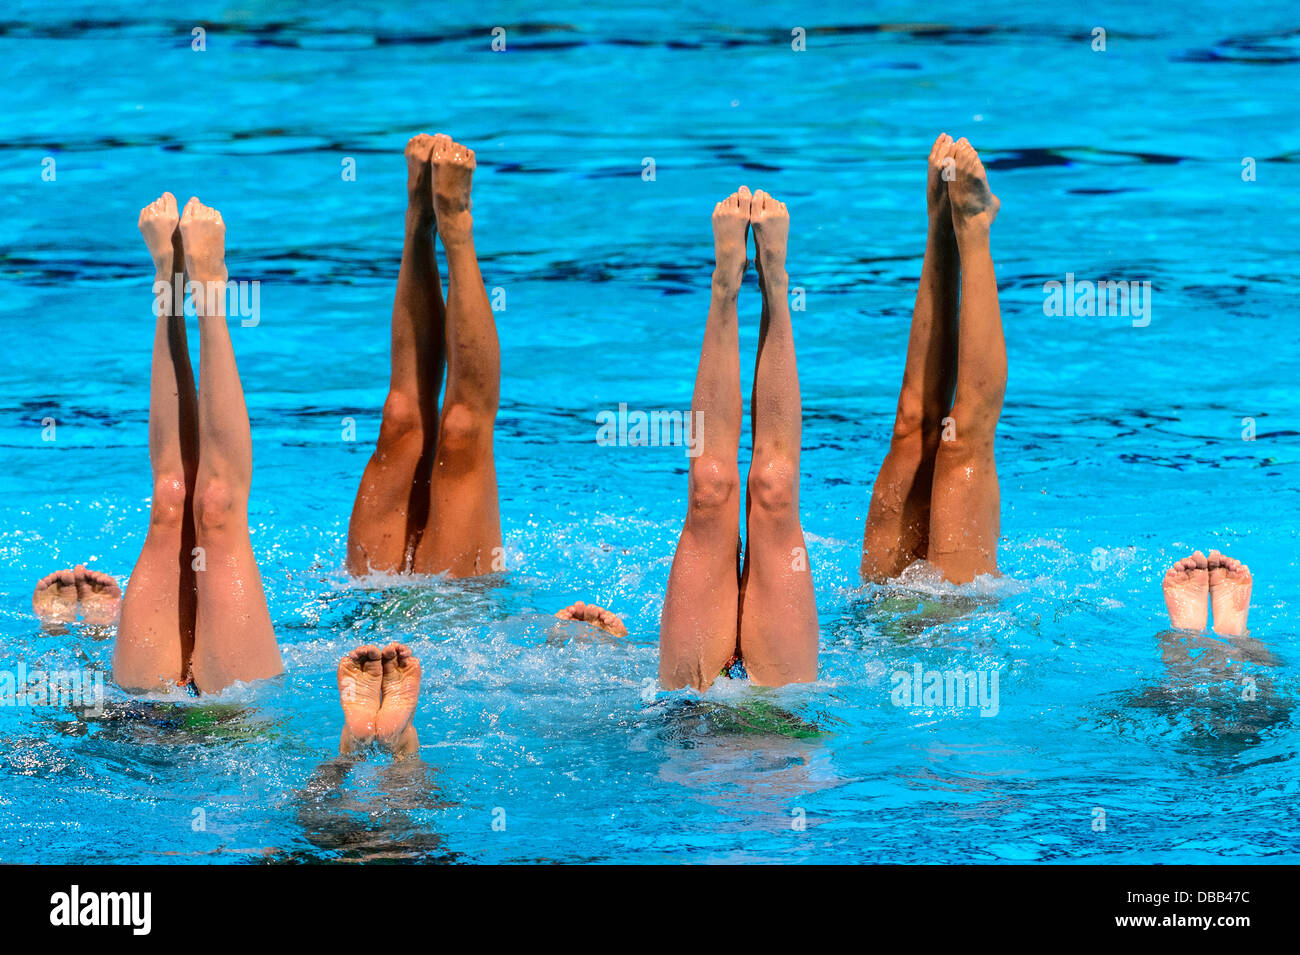 Barcelona, Spain. 26th July 2013: Canada's team competes in the synchronized swimming Team Free Routine finals - Stock Image